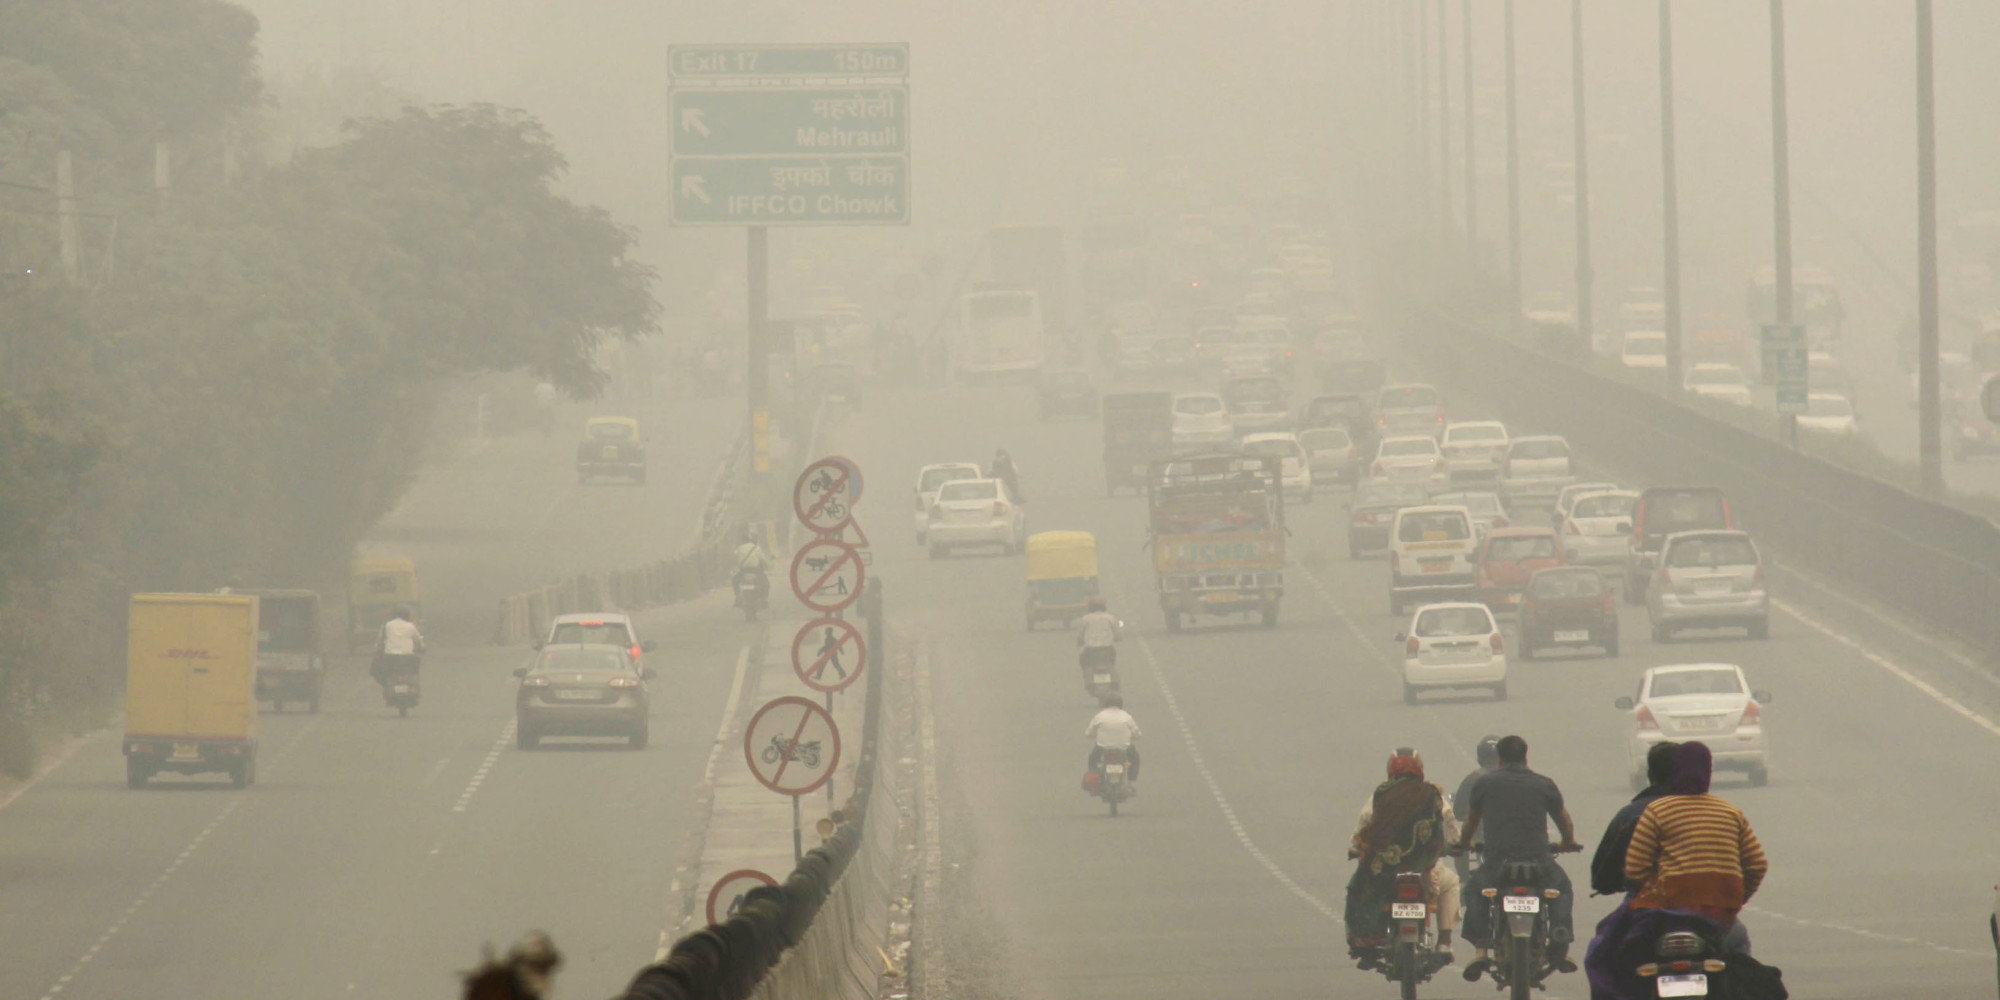 United States Supreme >> India's Smog Destroyed Enough Crops In A Year To Feed 94 Million People: Study | HuffPost